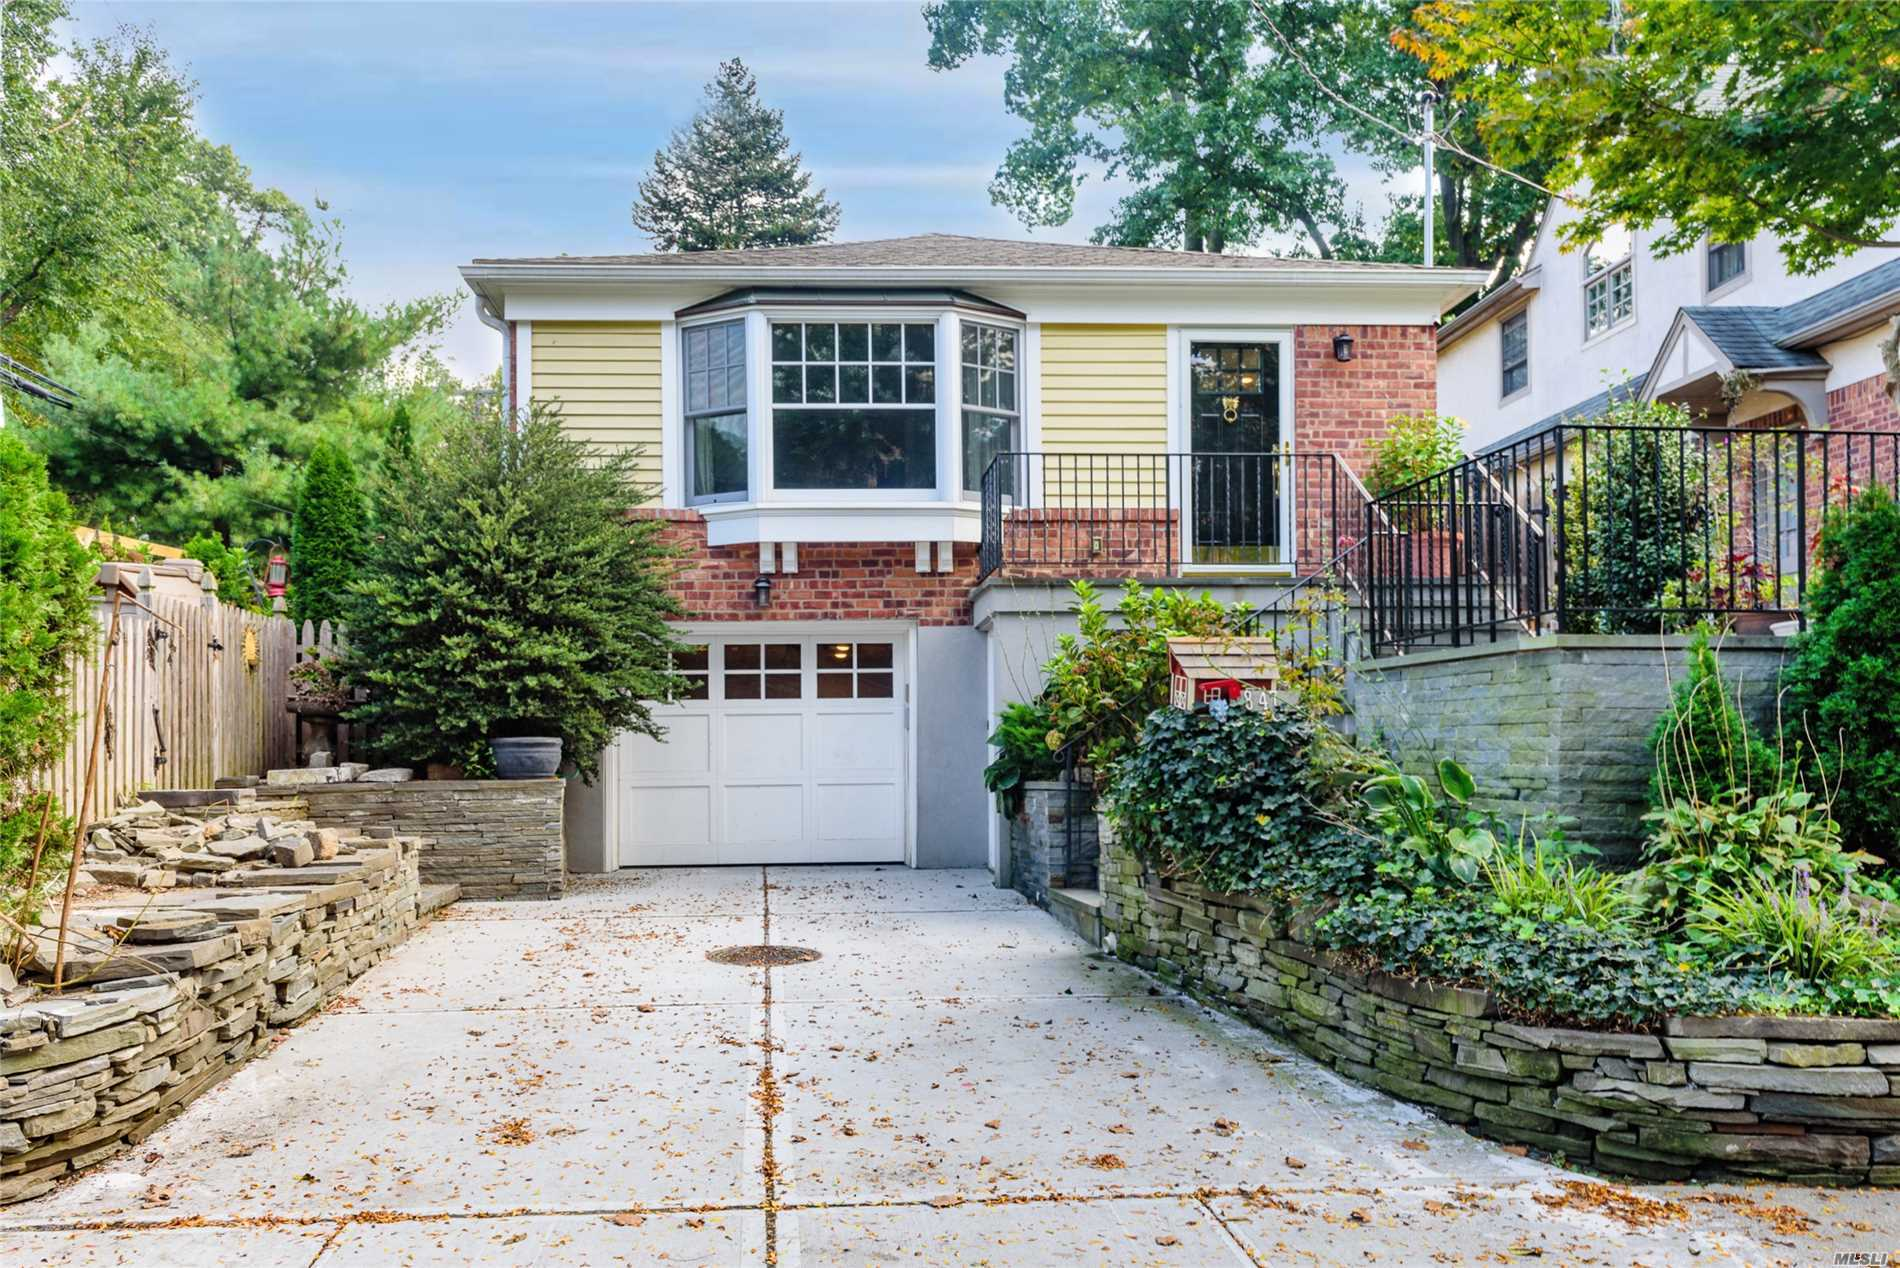 Hi Ranch In Mint Condition With New Baths And Kitchen, Bay Window In Living Room, Formal Dining Room, Finished Family /Playroom. Private Fenced In Yard Five Min. Walk To School, And Lirr.( 28 Min. To Manhattan) Easy Living!